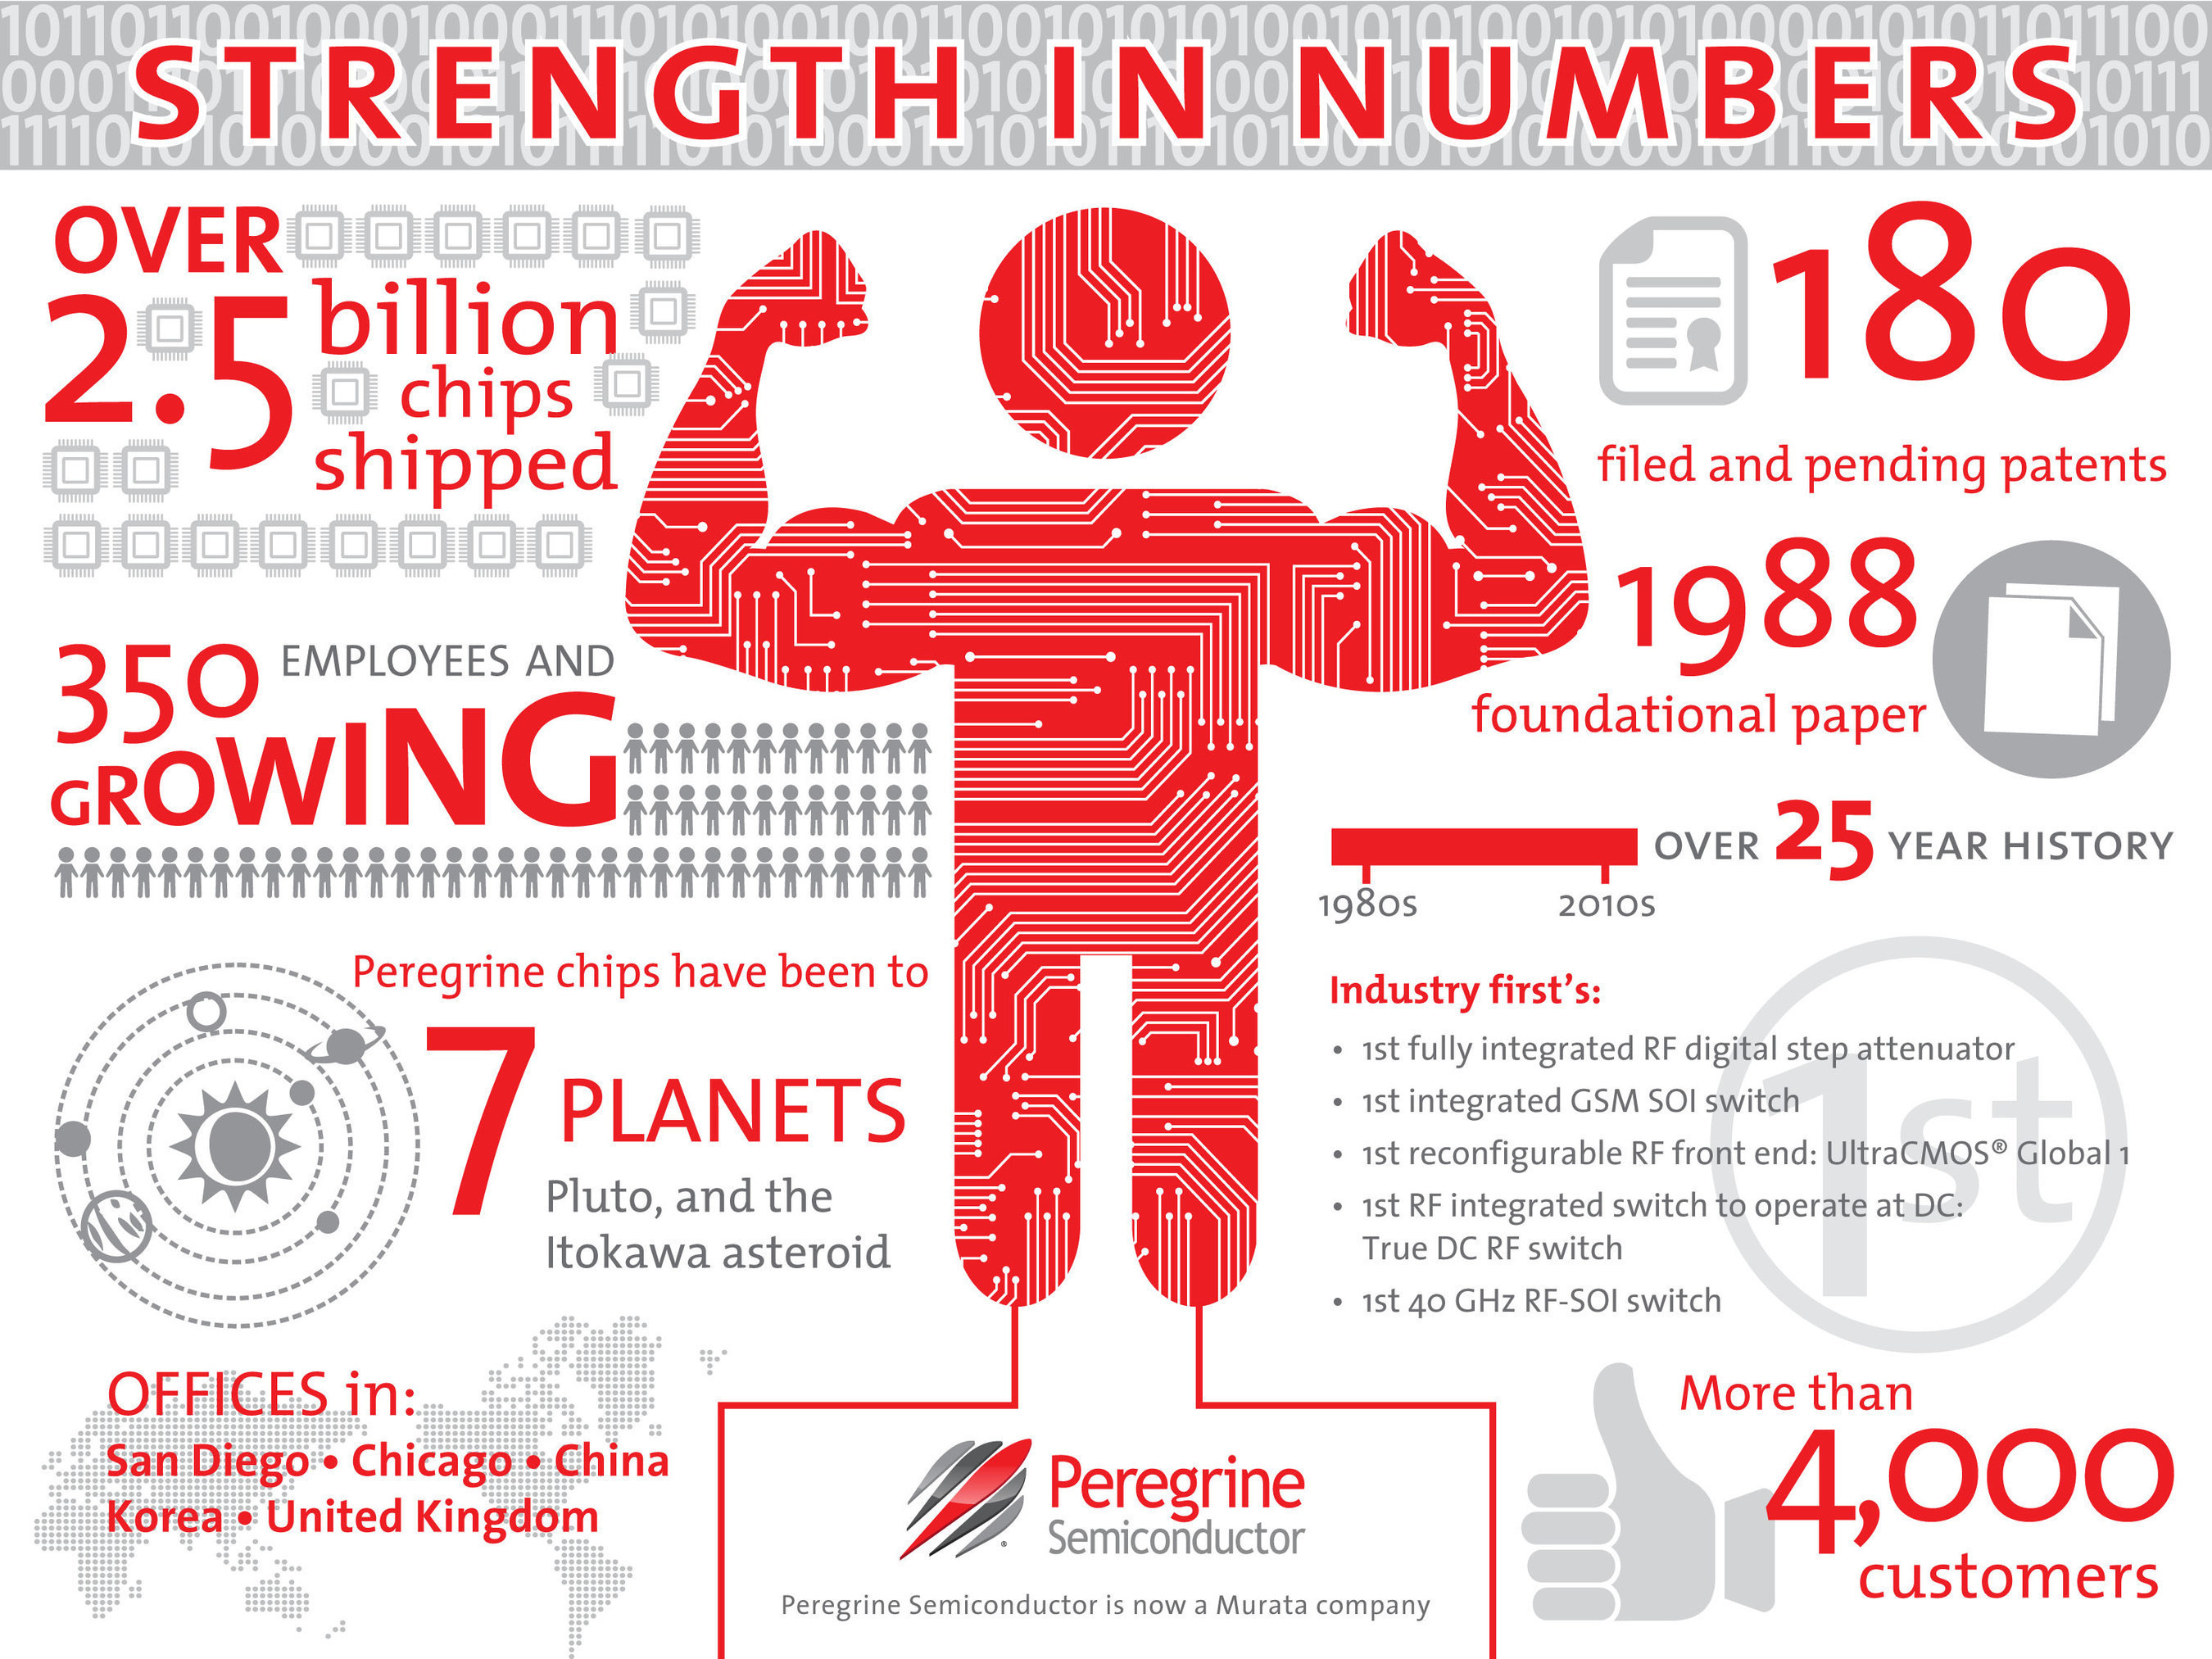 Peregrine Semiconductor's 350 employees, and growing, are proud to be a part of a strong tradition of ...